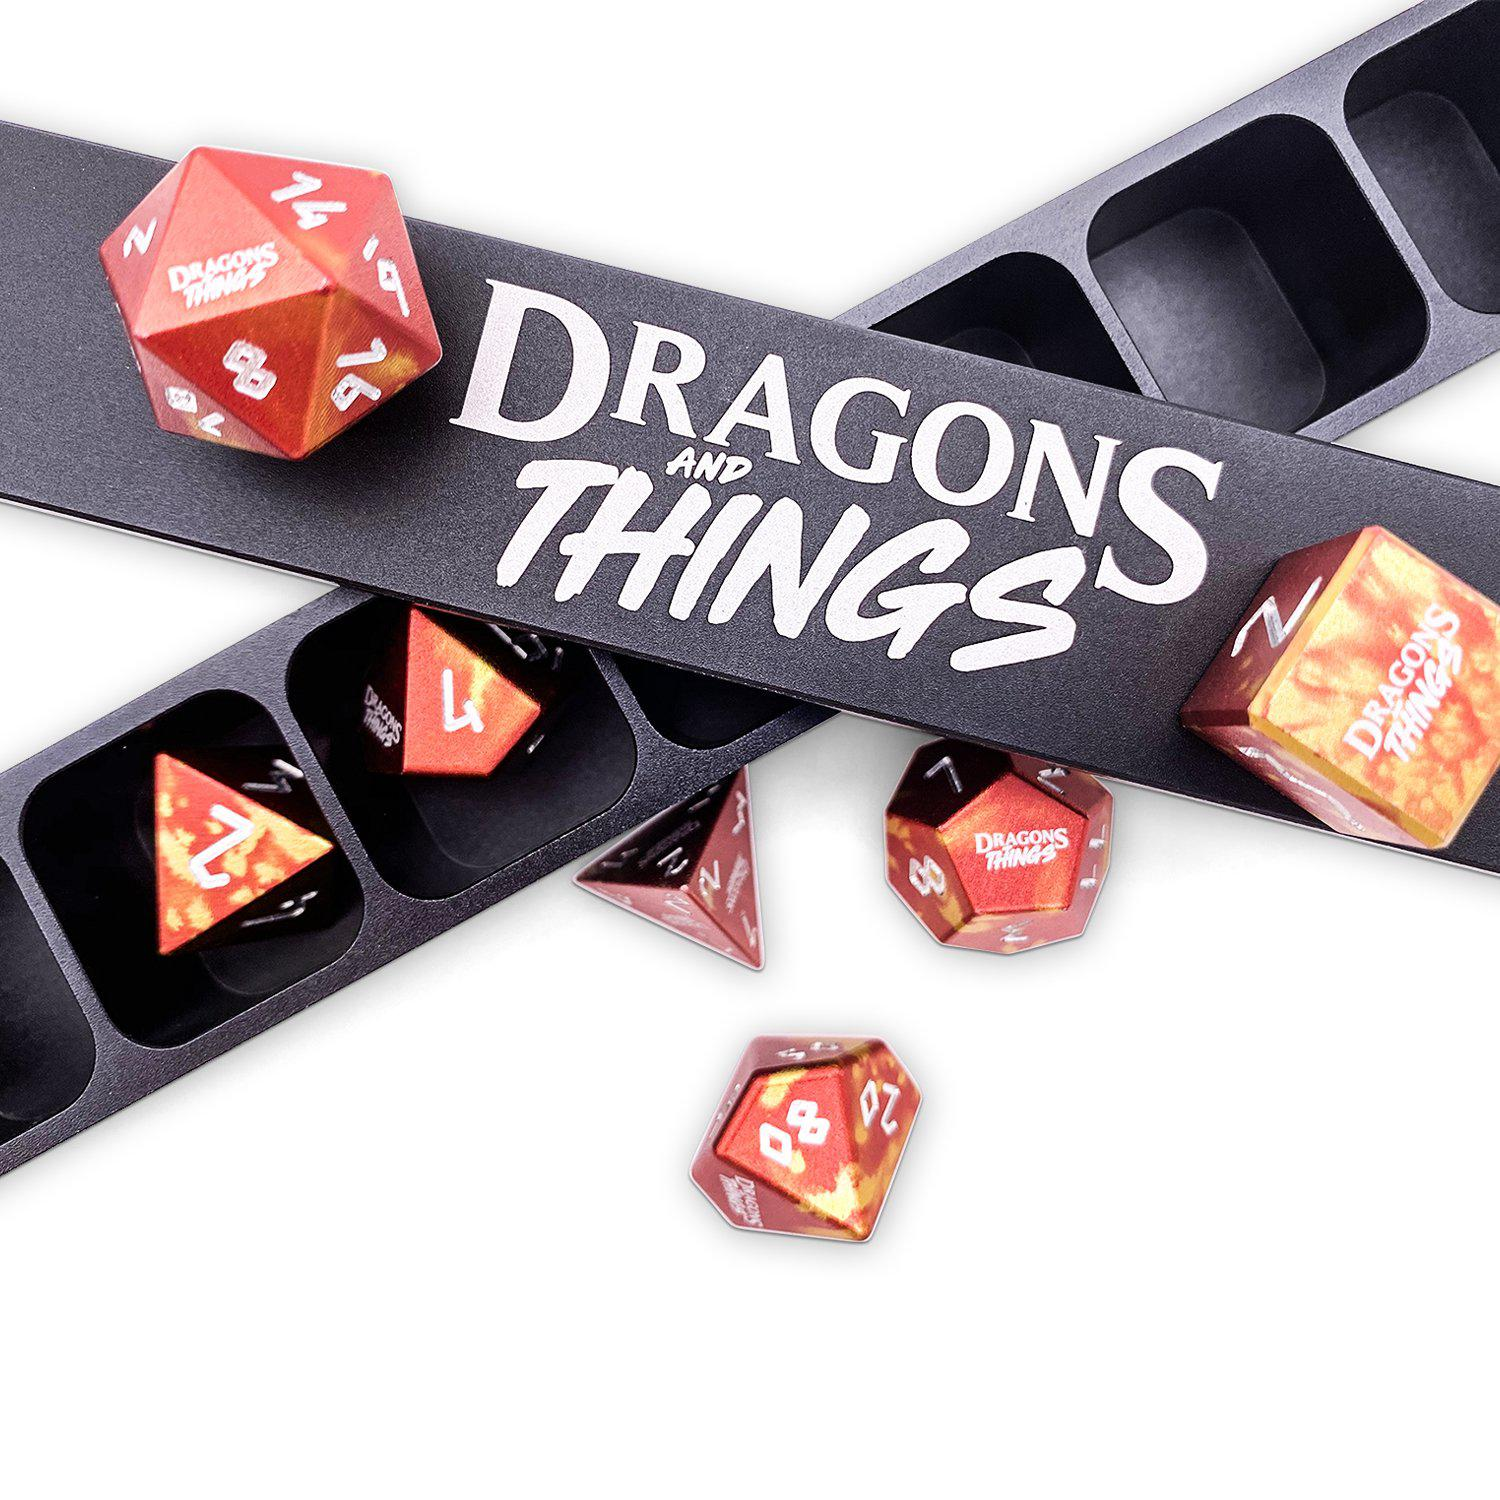 Dragons and Things Phoenix Tears - Precision CNC Aluminum Dice Set with Dice Vault